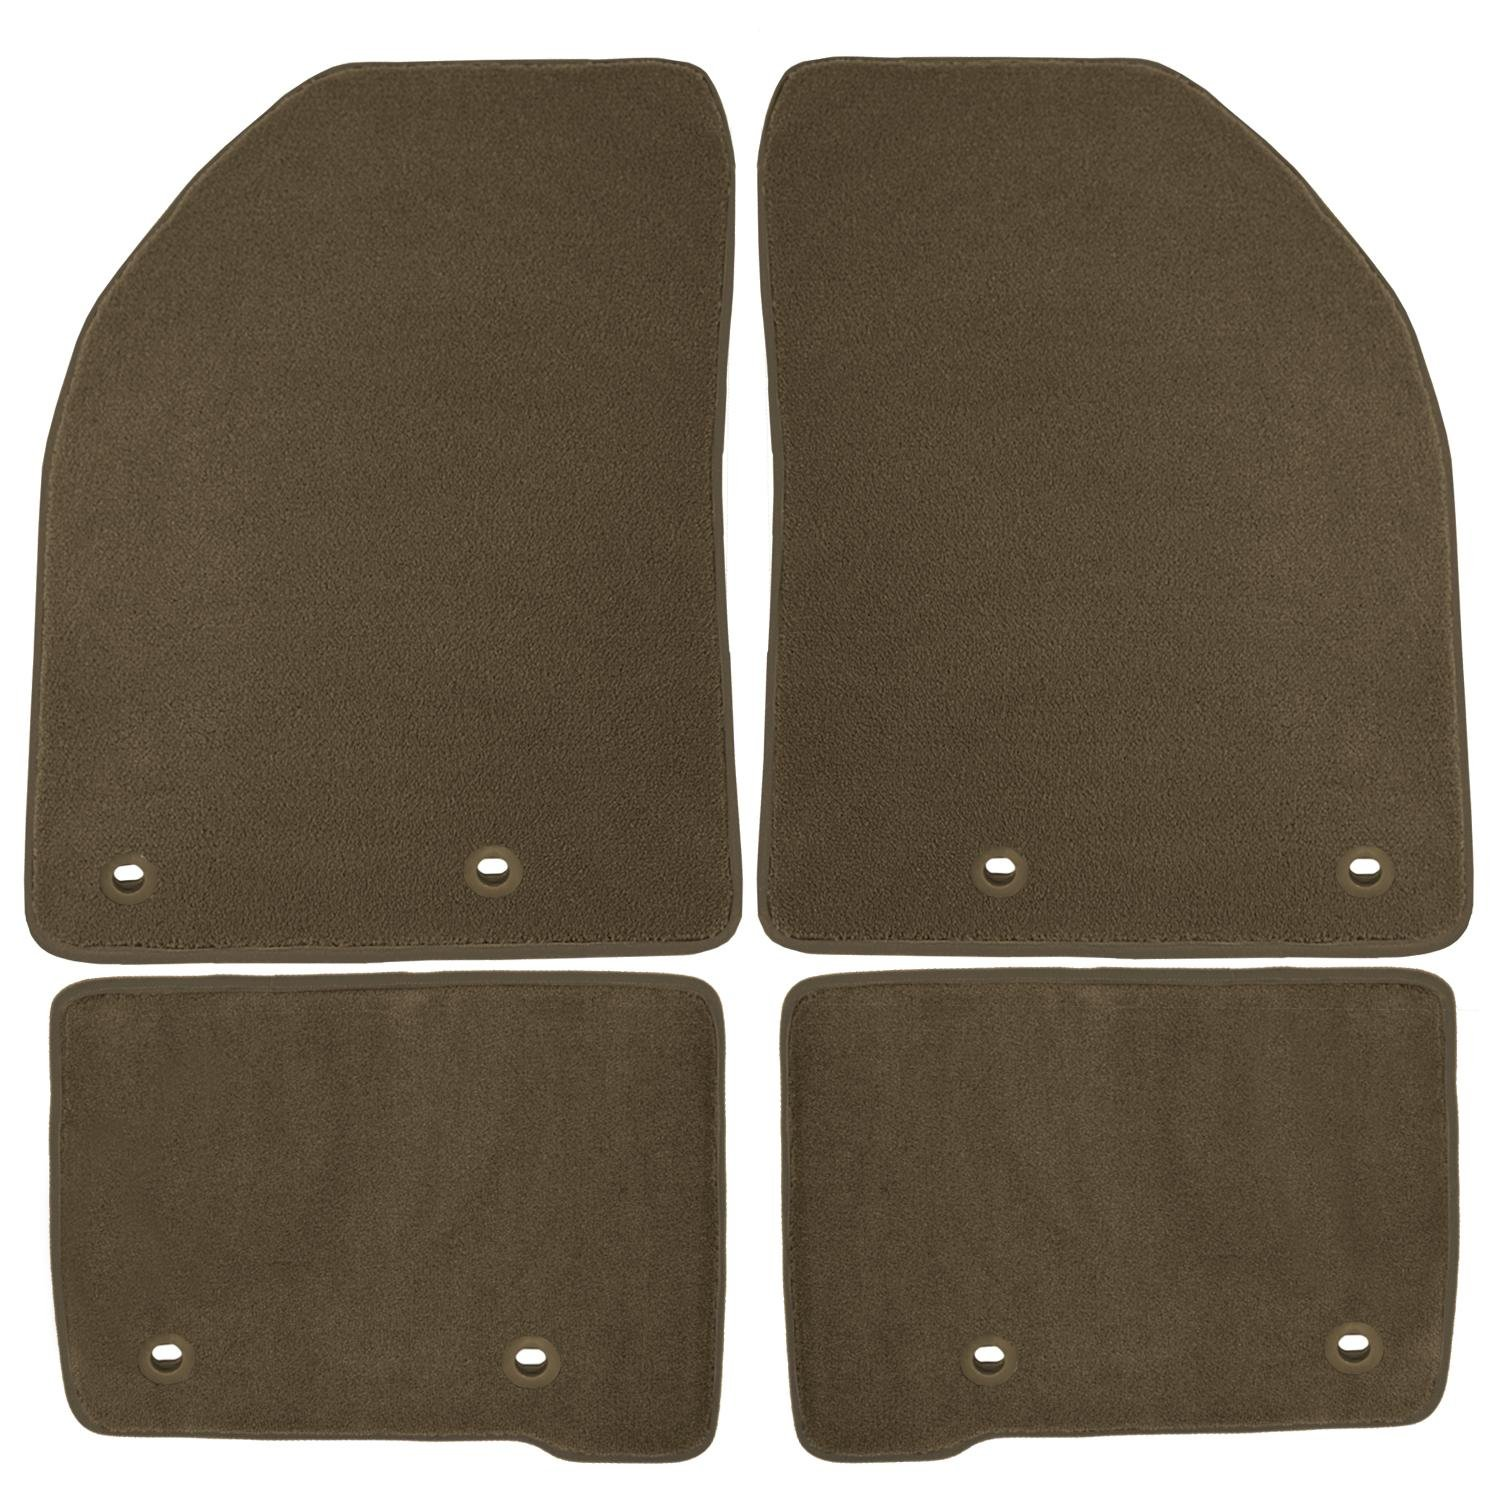 Black Nylon Carpet Coverking Custom Fit Front Floor Mats for Select Focus Models